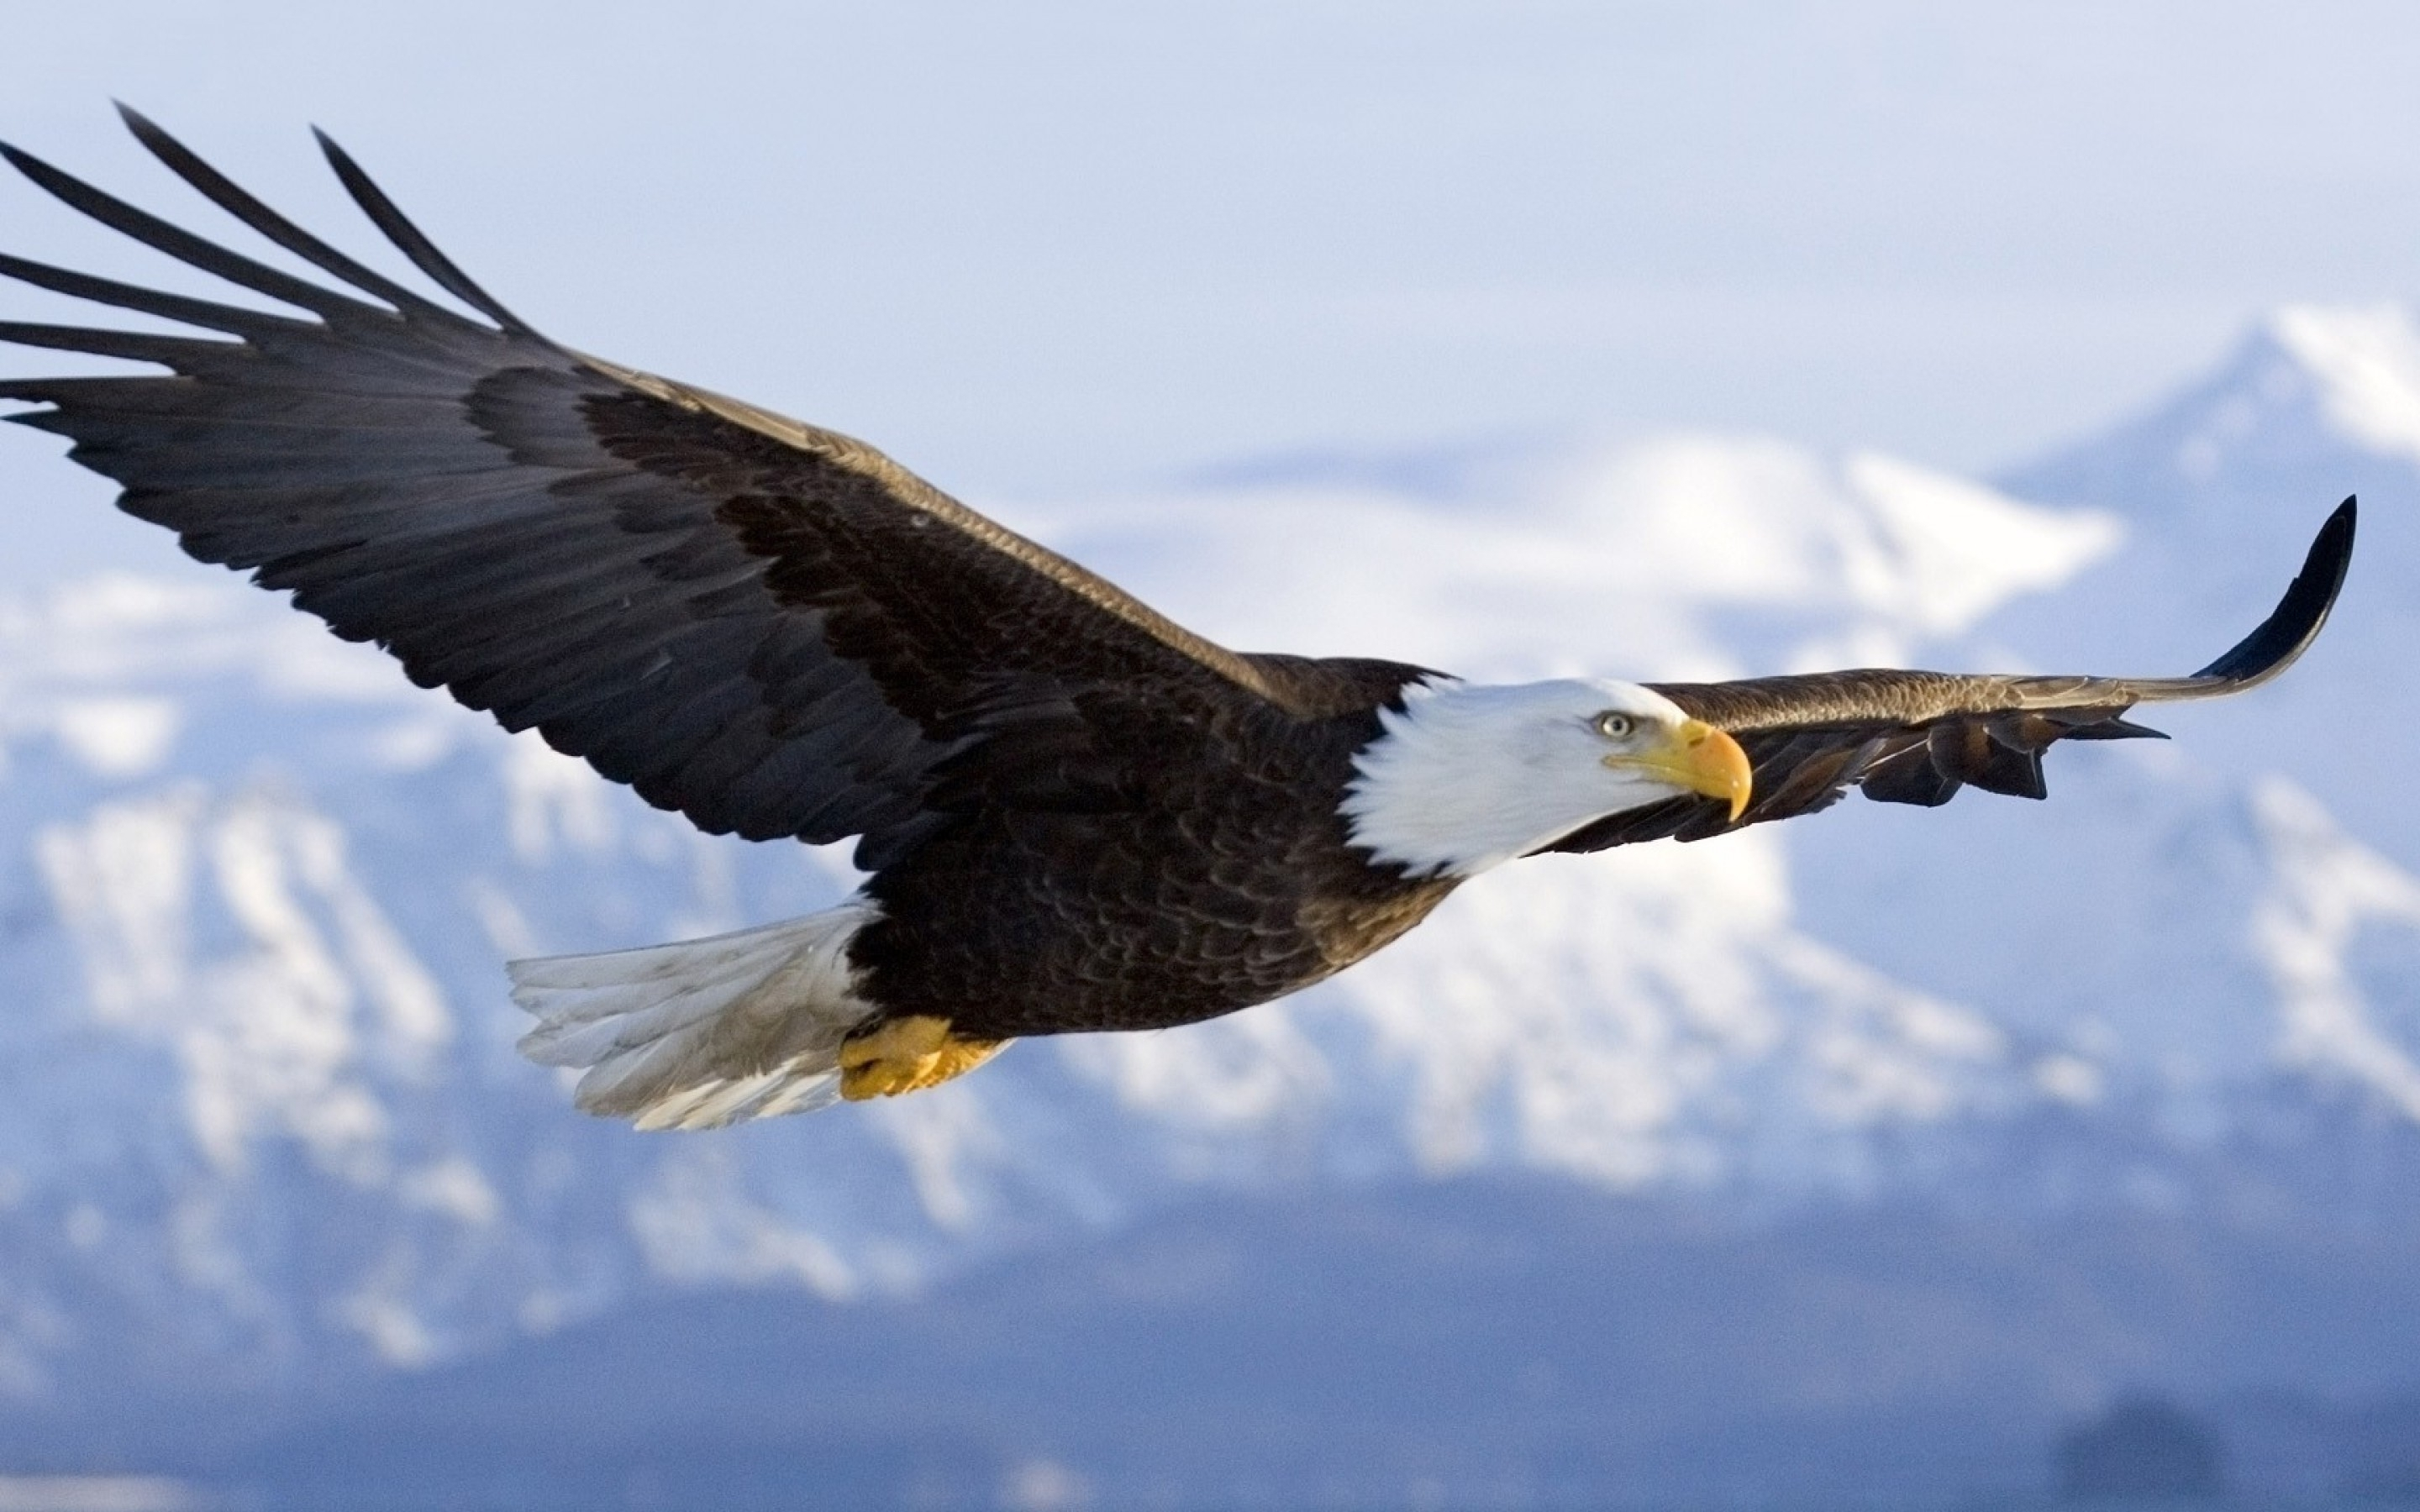 flying eagle in sky hd wallpaper | hd wallpapers